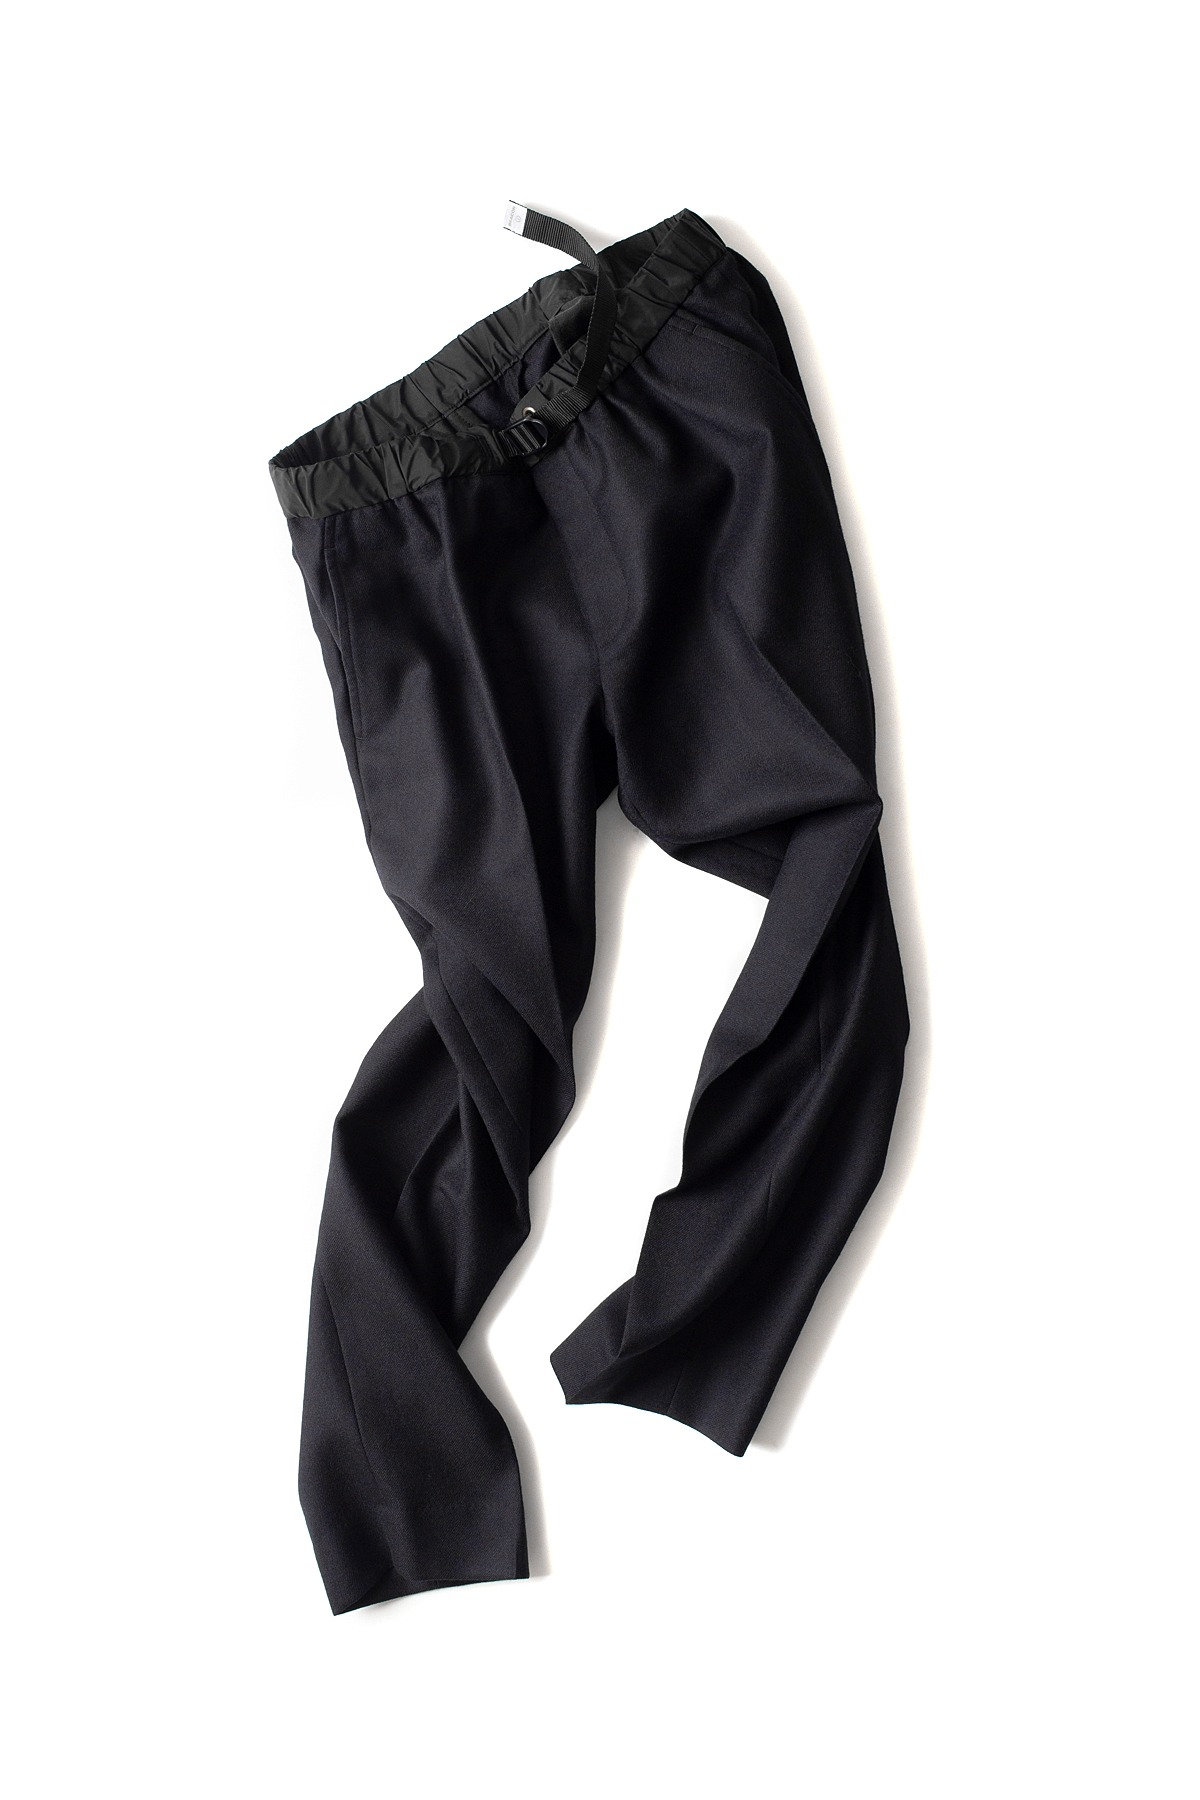 kolor / BEACON : P06140 Pants (Black)